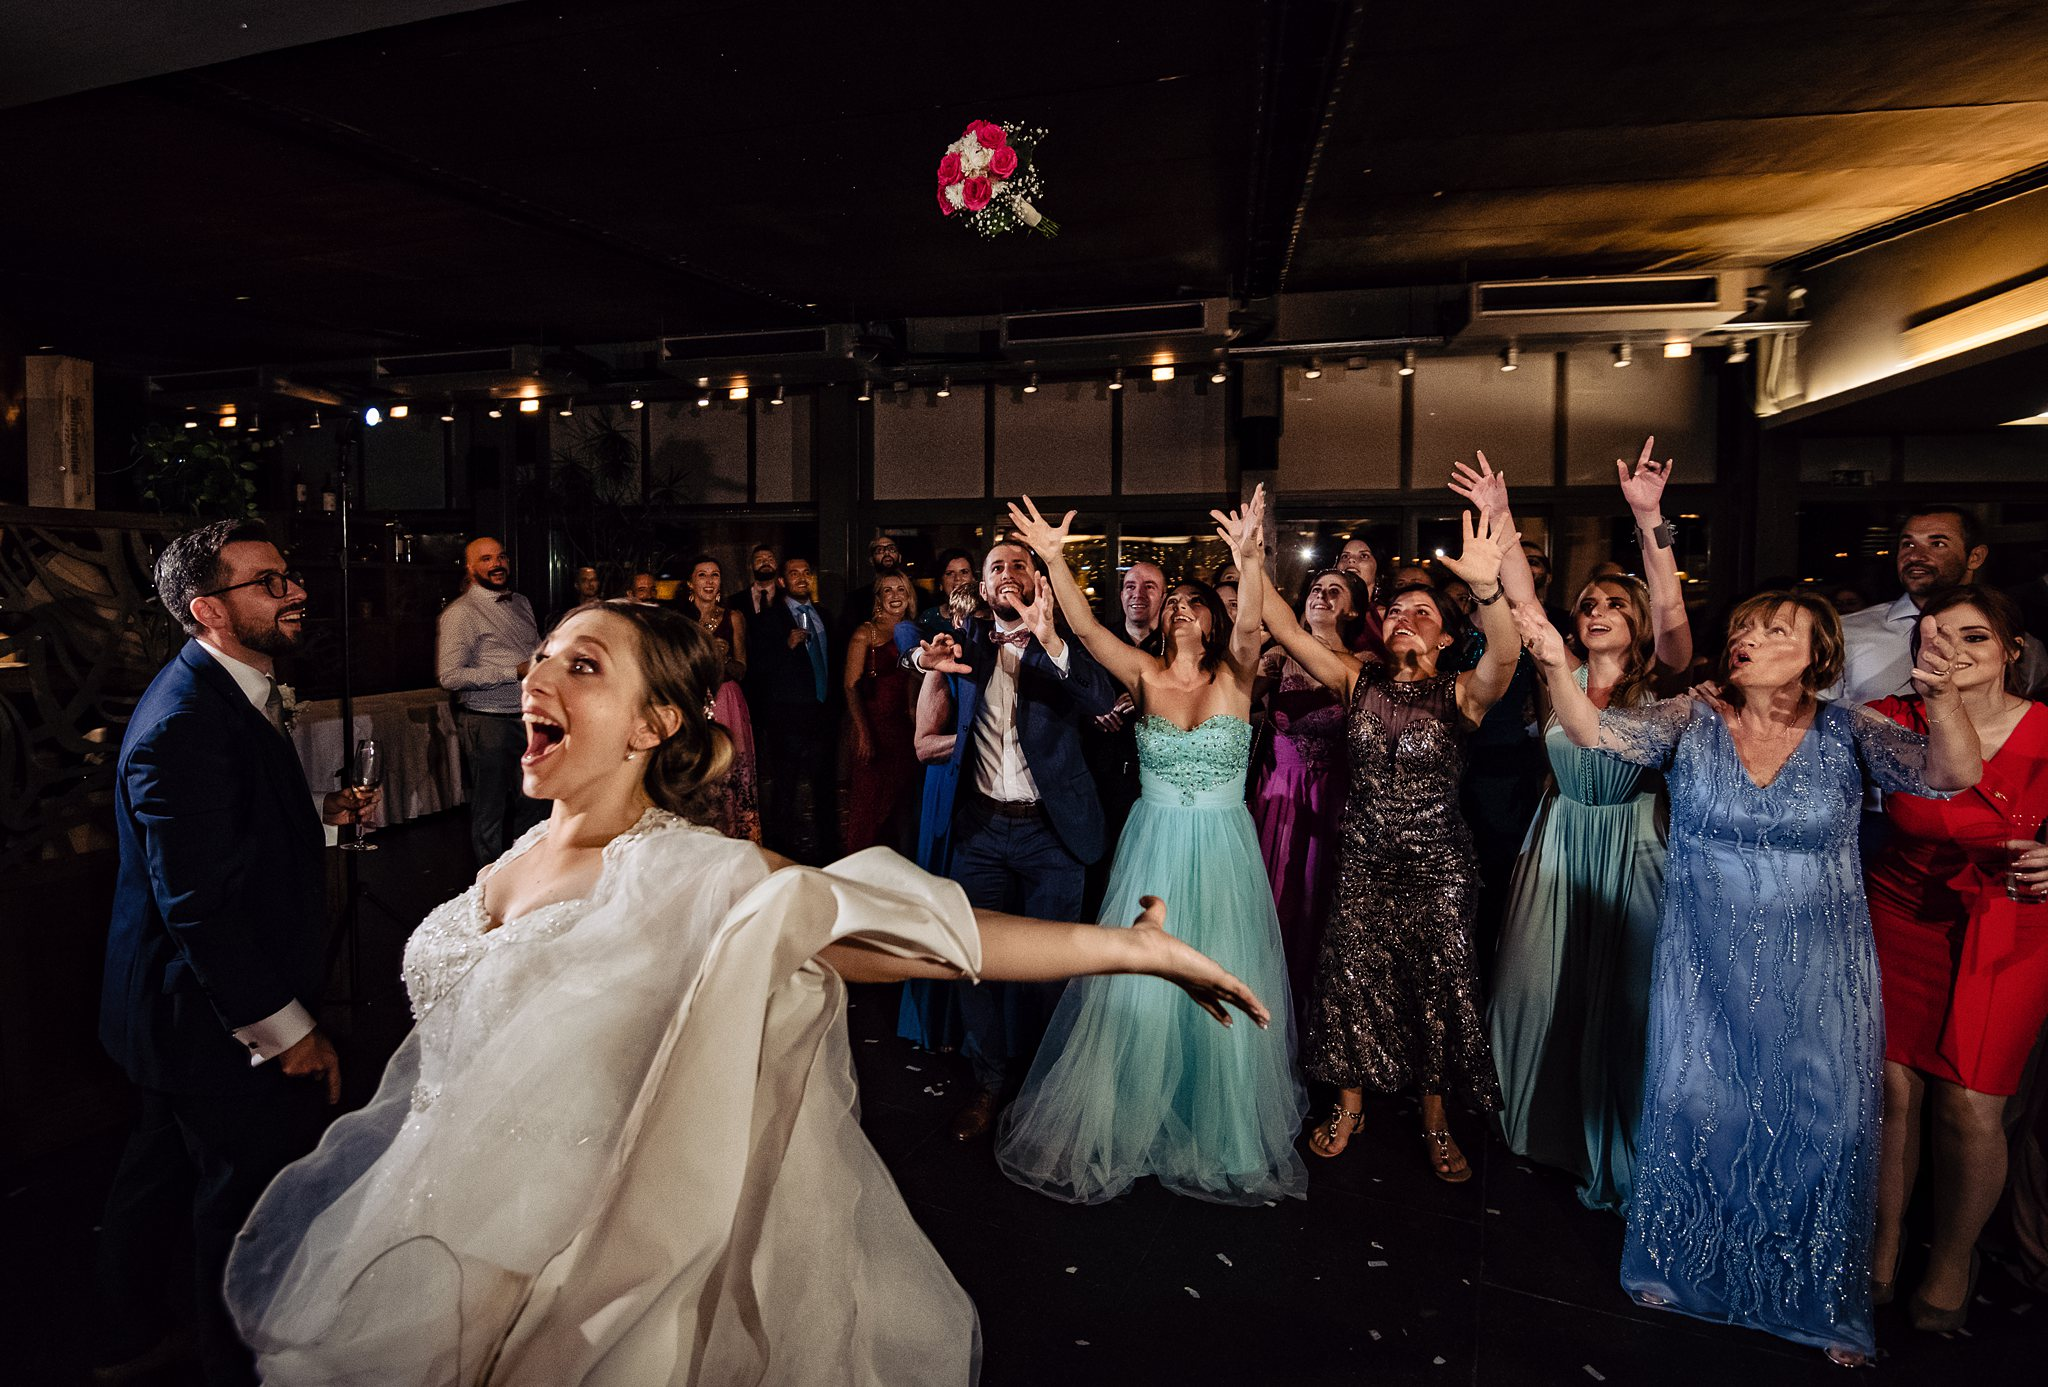 bride excitingly tossing the bouquet to the single women- photo by Shane P Watts Photography